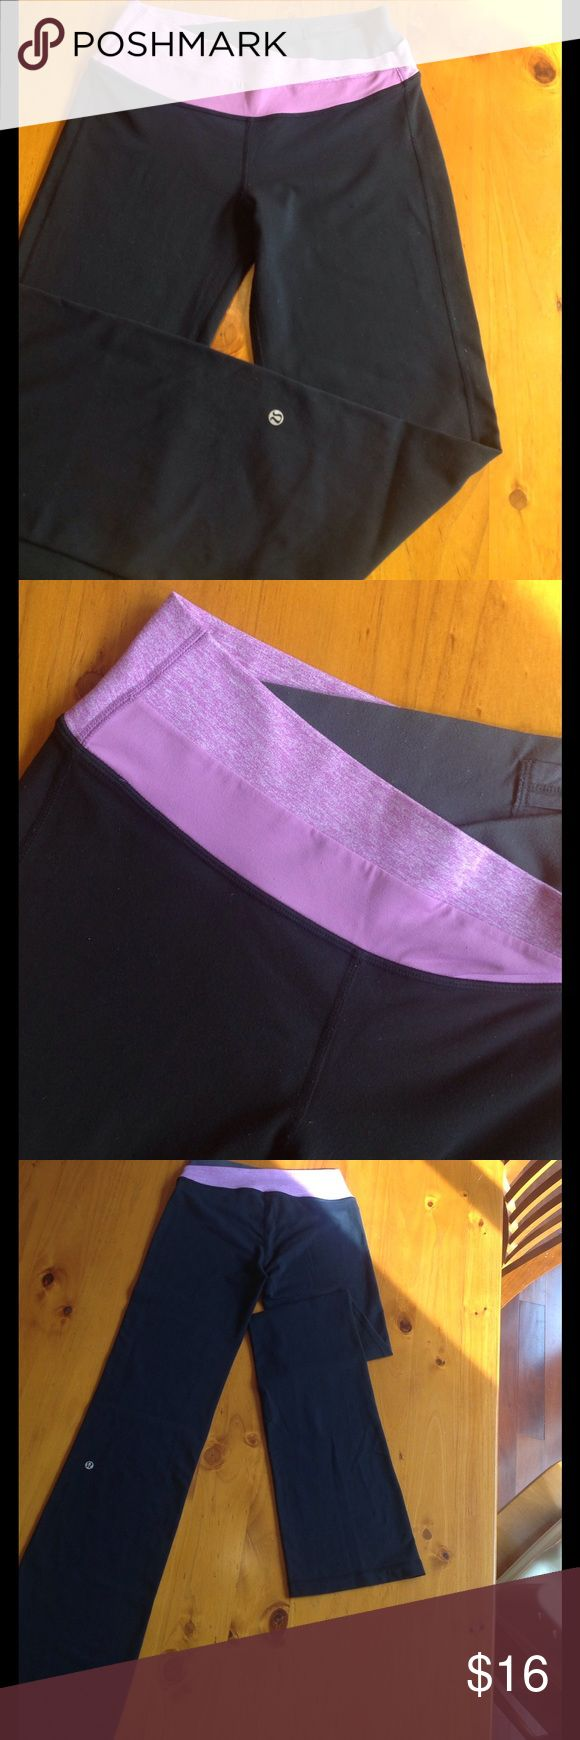 Tall Yoga Pants Comfy, flattering, and made for us tall drinks of water! Wide, fold-down waistband, hidden interior pocket. Always line-dried. Light pilling. Lots of life left! lululemon athletica Pants